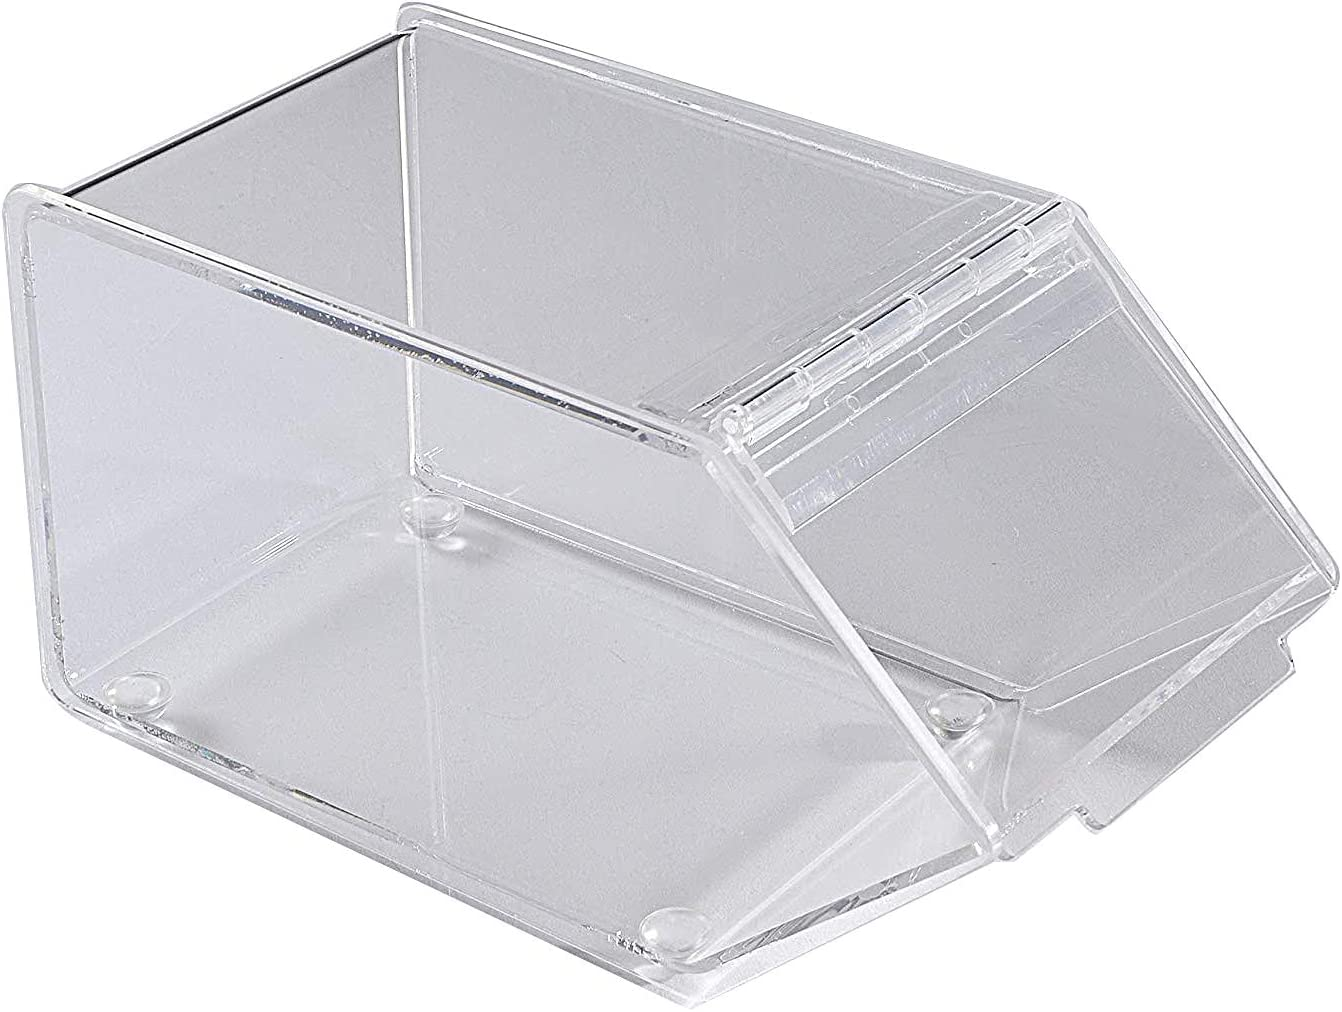 Beans Toys Bins Holder Display Box Lucite Plexiglass Countertop Container 20146-2 Dry Foods FixtureDisplays Acrylic Candy